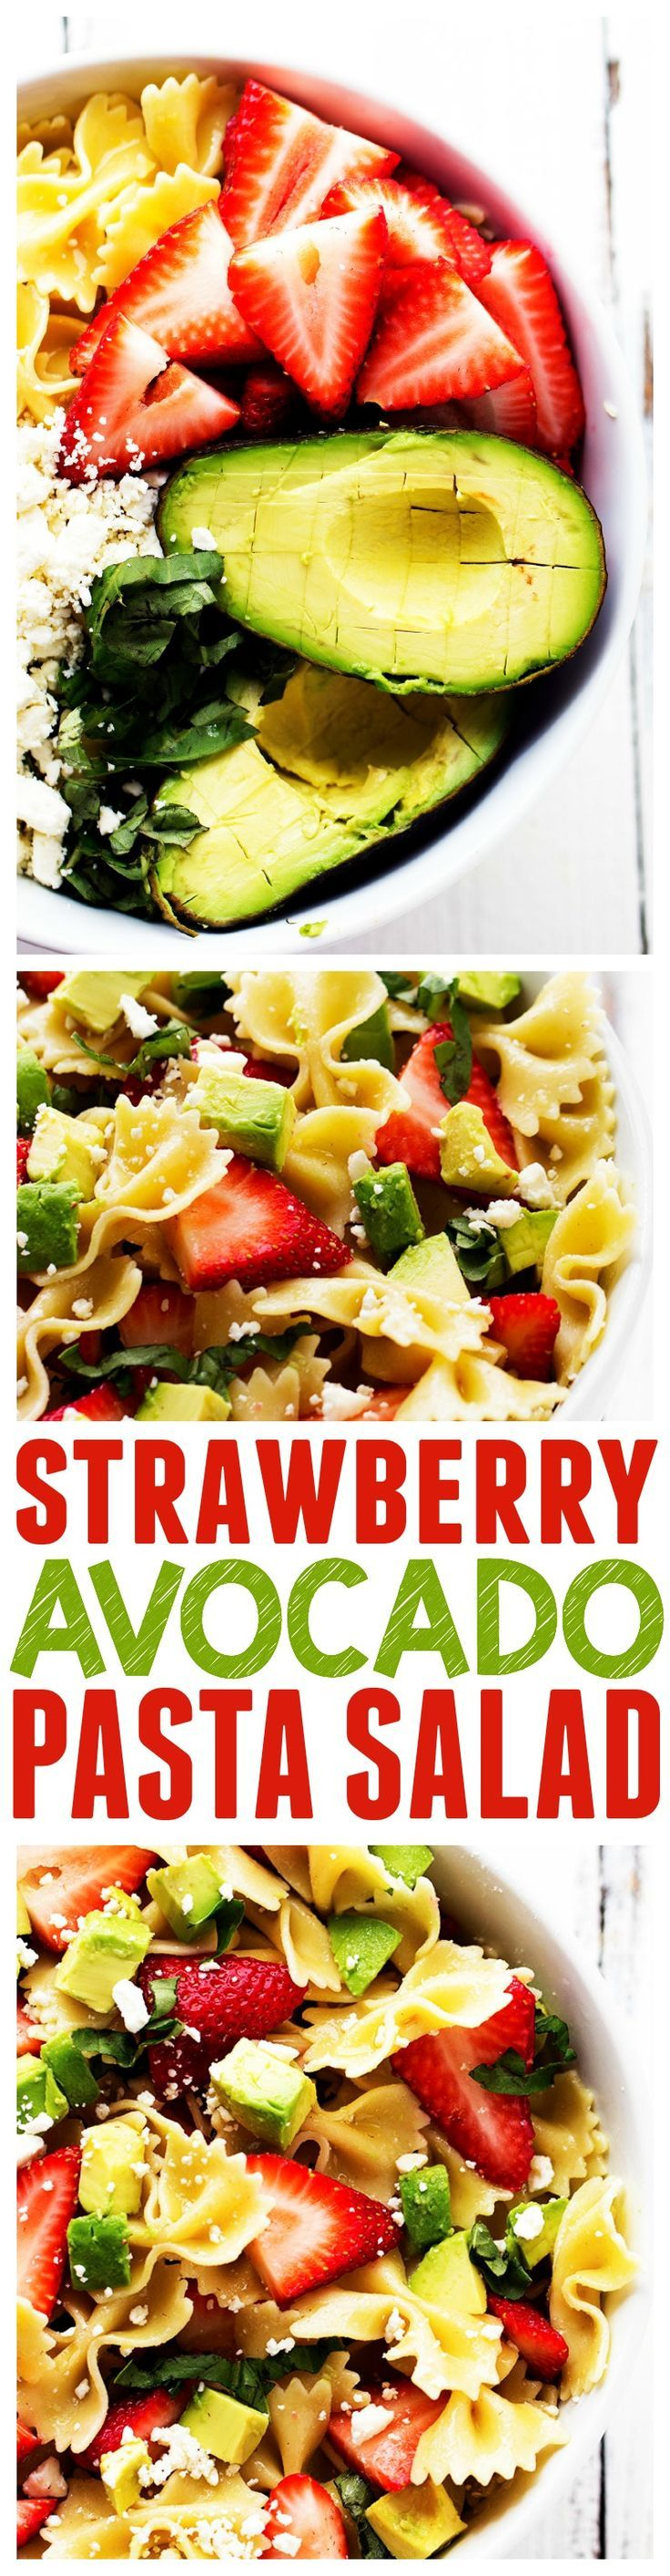 This Strawberry Avocado Pasta Salads is one unforgettable salad!!! Strawberries, Avocados, Basil and Feta Cheese come together to create the BEST pasta salad!!